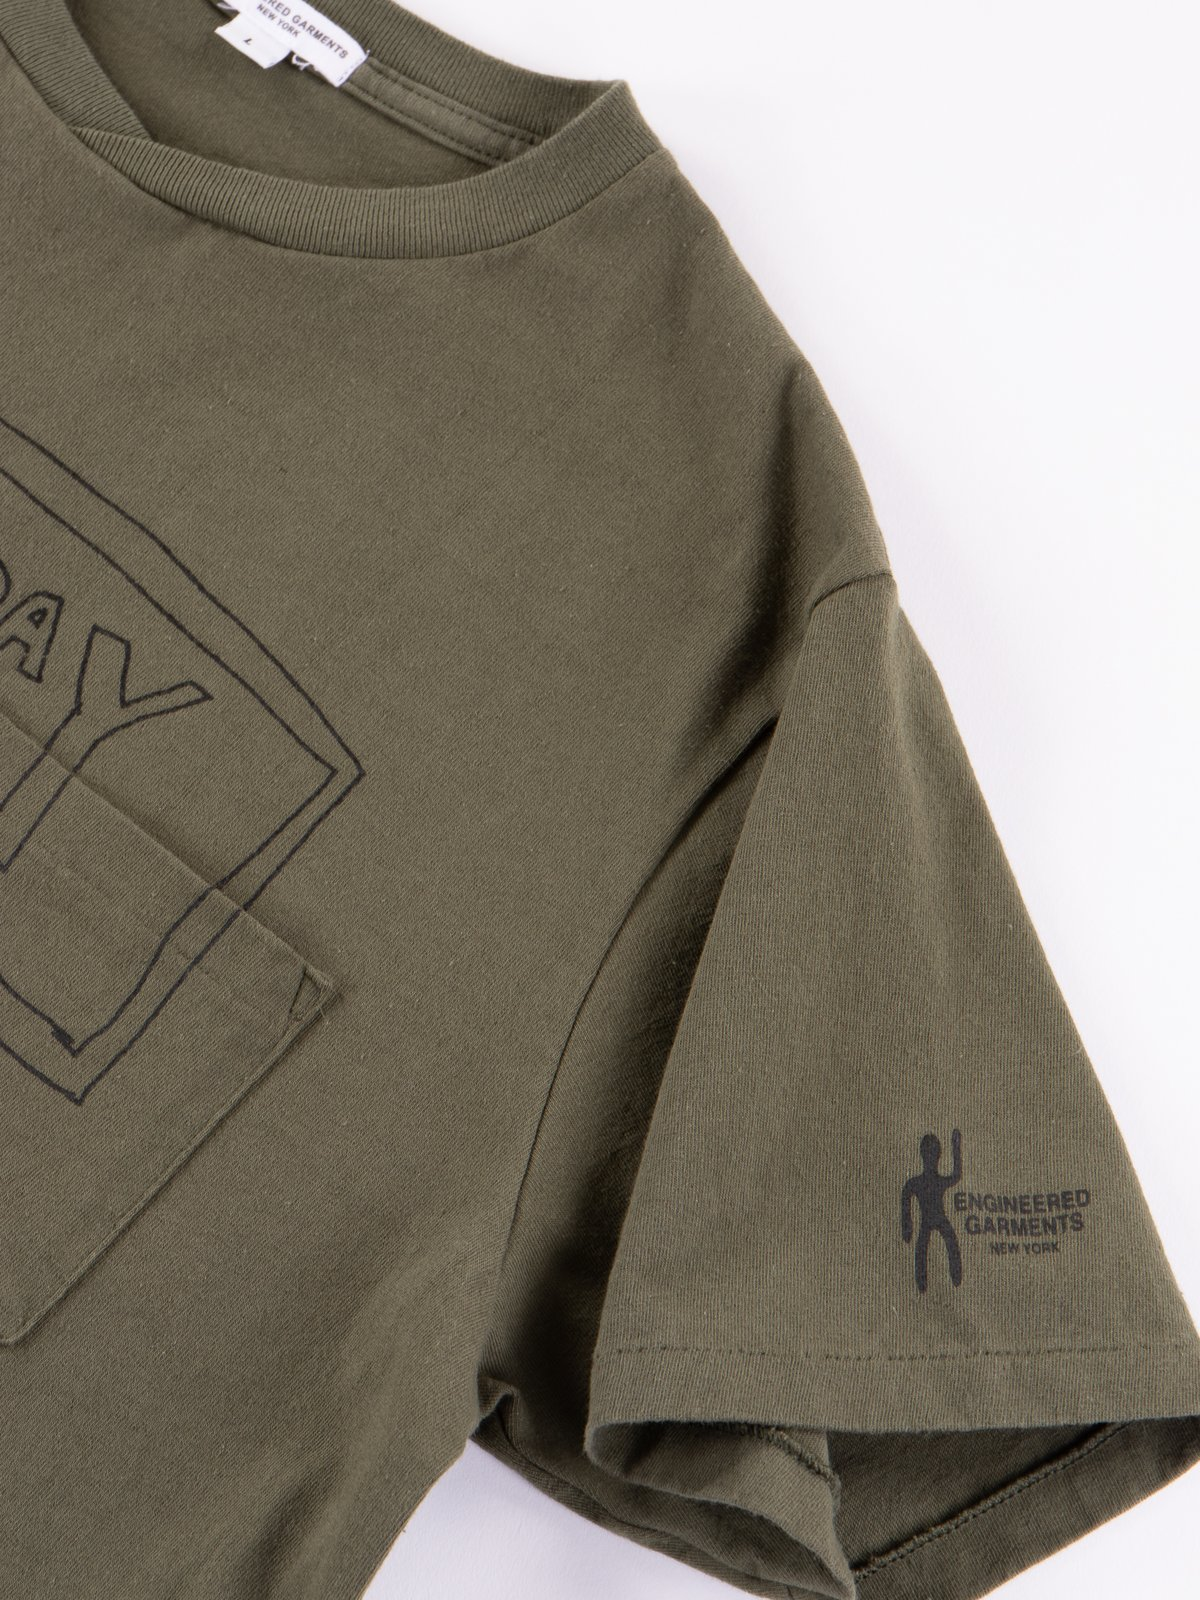 Olive Everyone Crossover Crew Pocket Tee - Image 3